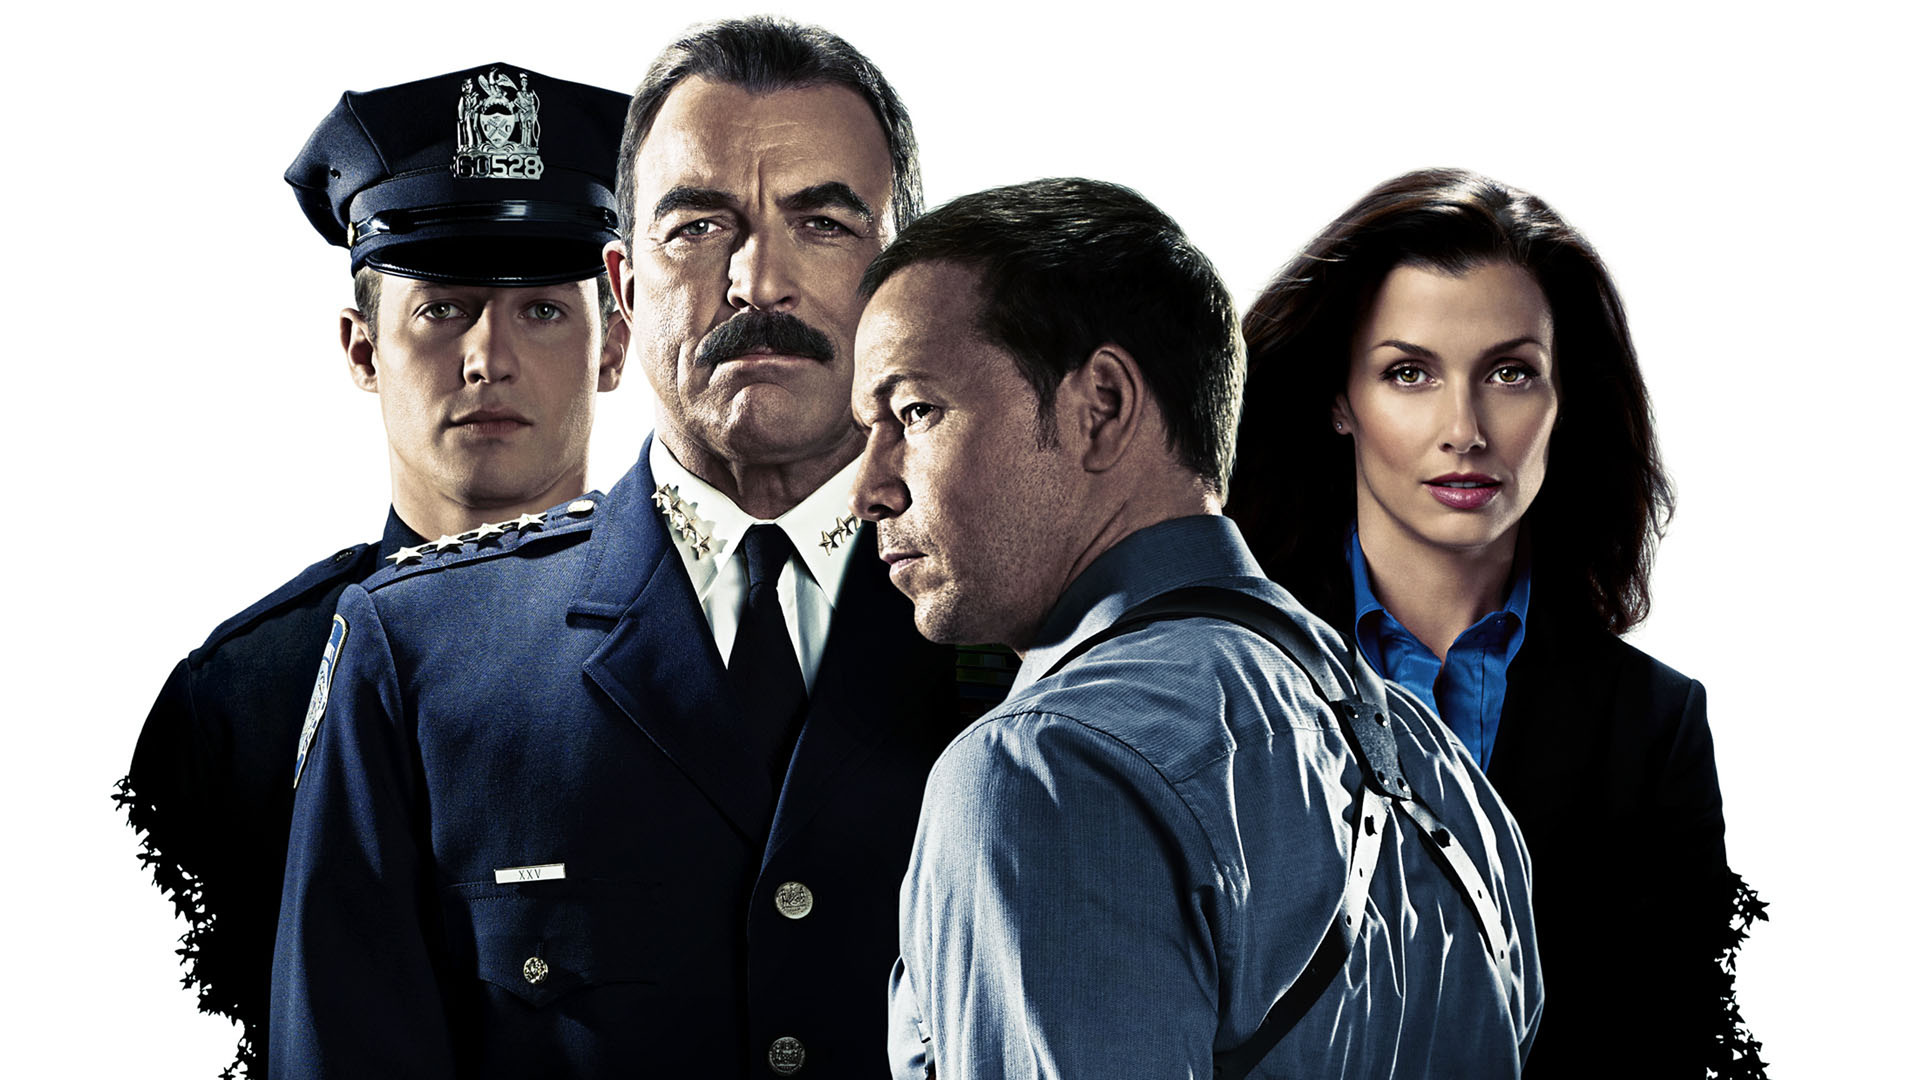 Blue bloods episode guide, show summaries and tv show schedule.